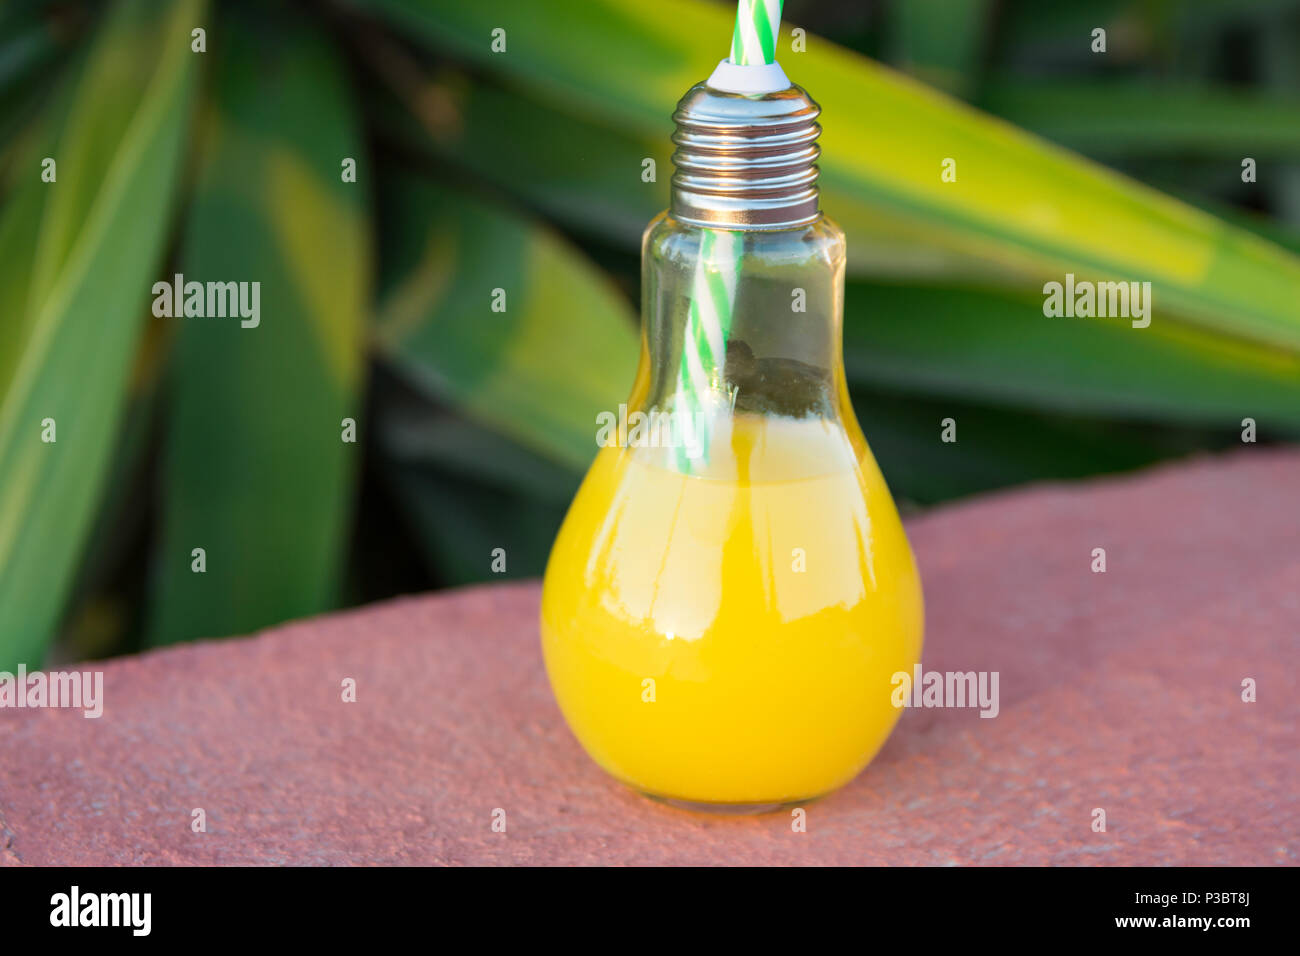 Bottle Palm Trees Stock Photos Bottle Palm Trees Stock Images